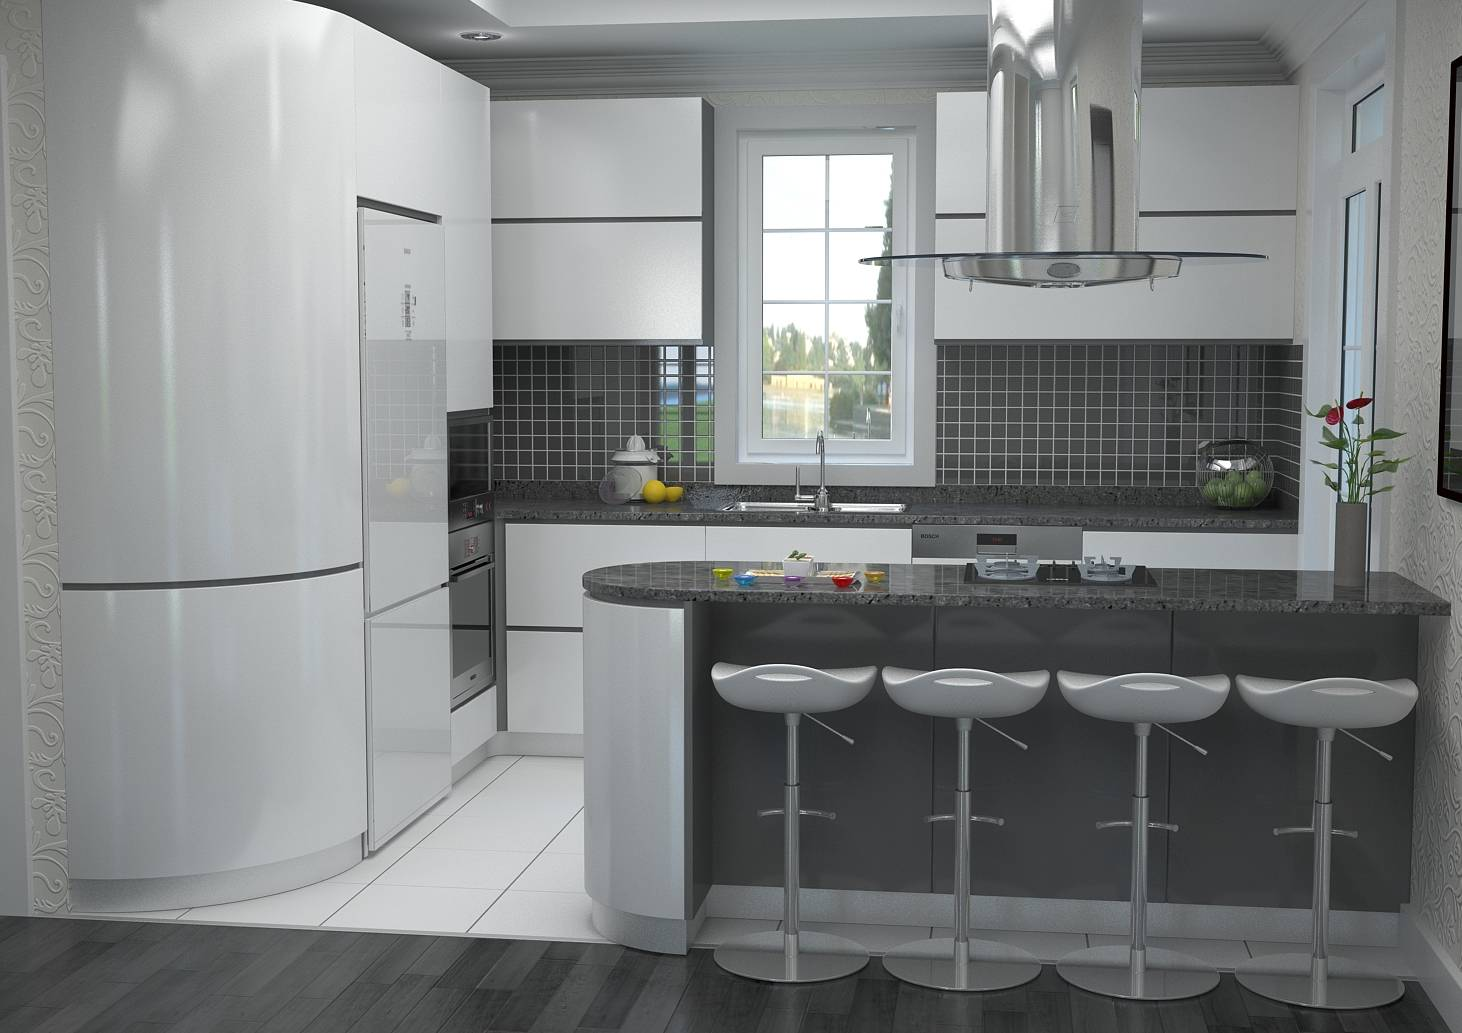 Mod le villa traditionnelle 100m2 tage r alisable dans for Idee de plan de cuisine amenagee